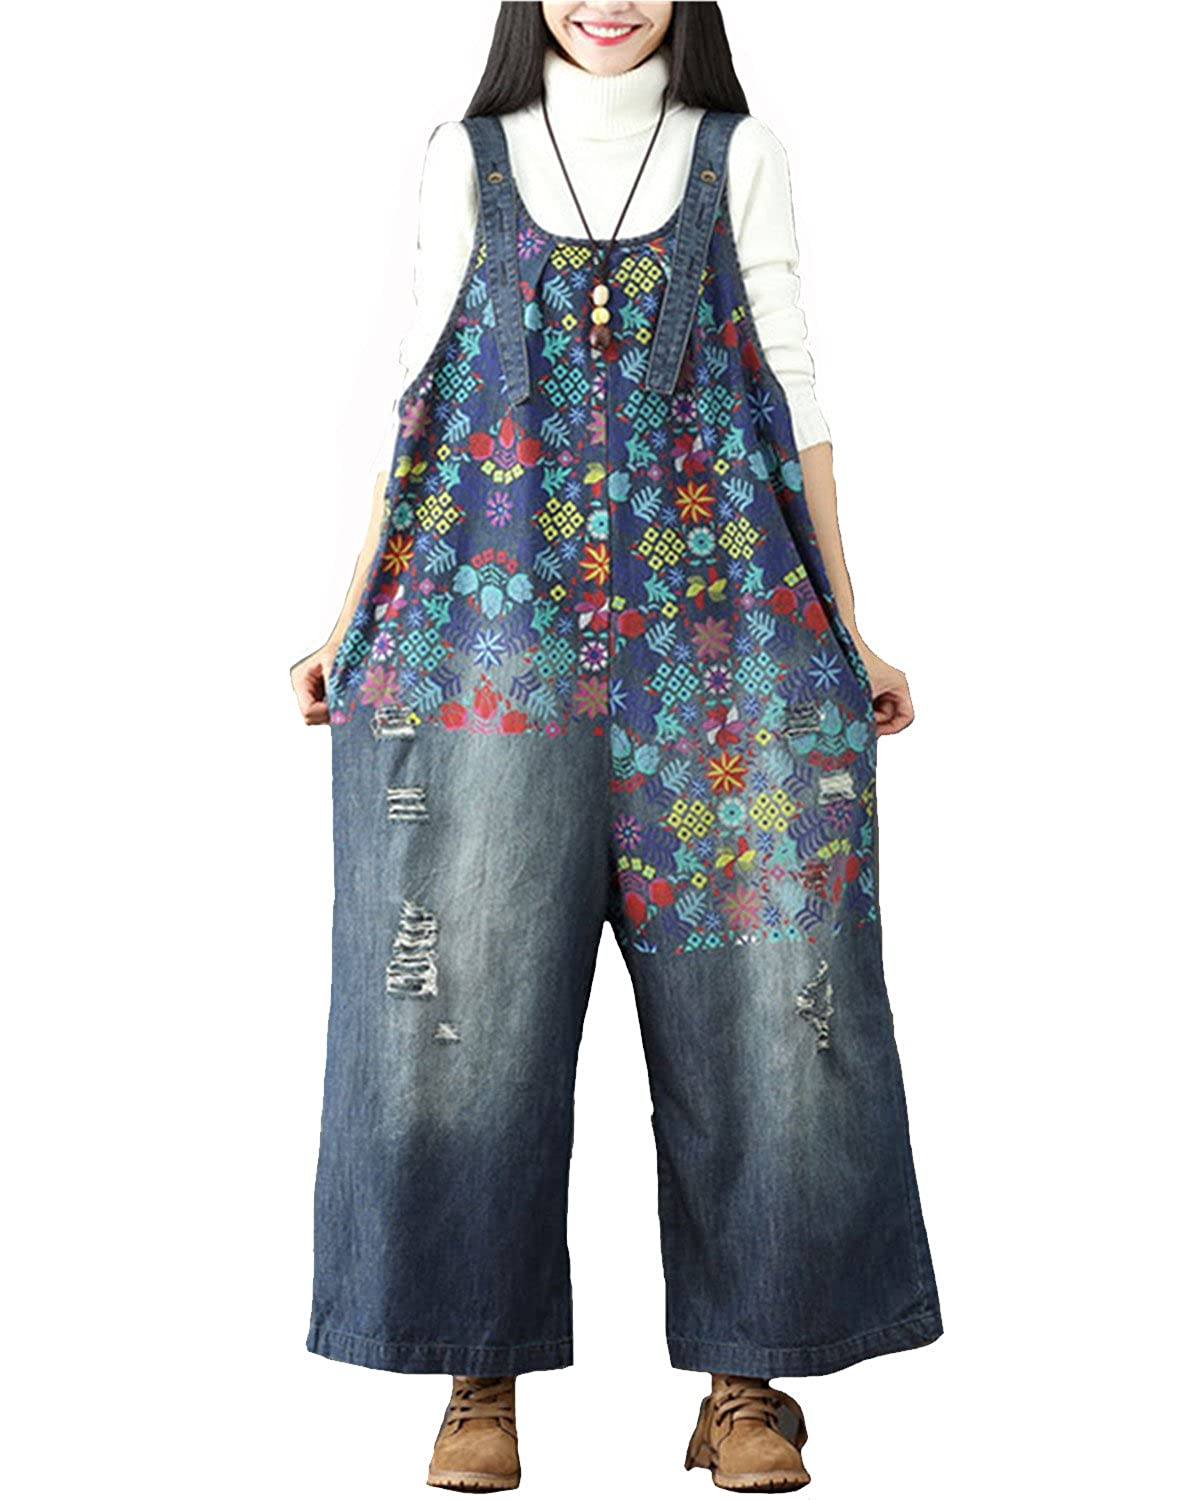 Aeneontrue Women's Casual Floral Harem Dungarees Bib Overalls Rompers Wide Leg Pants with Pocket AE701